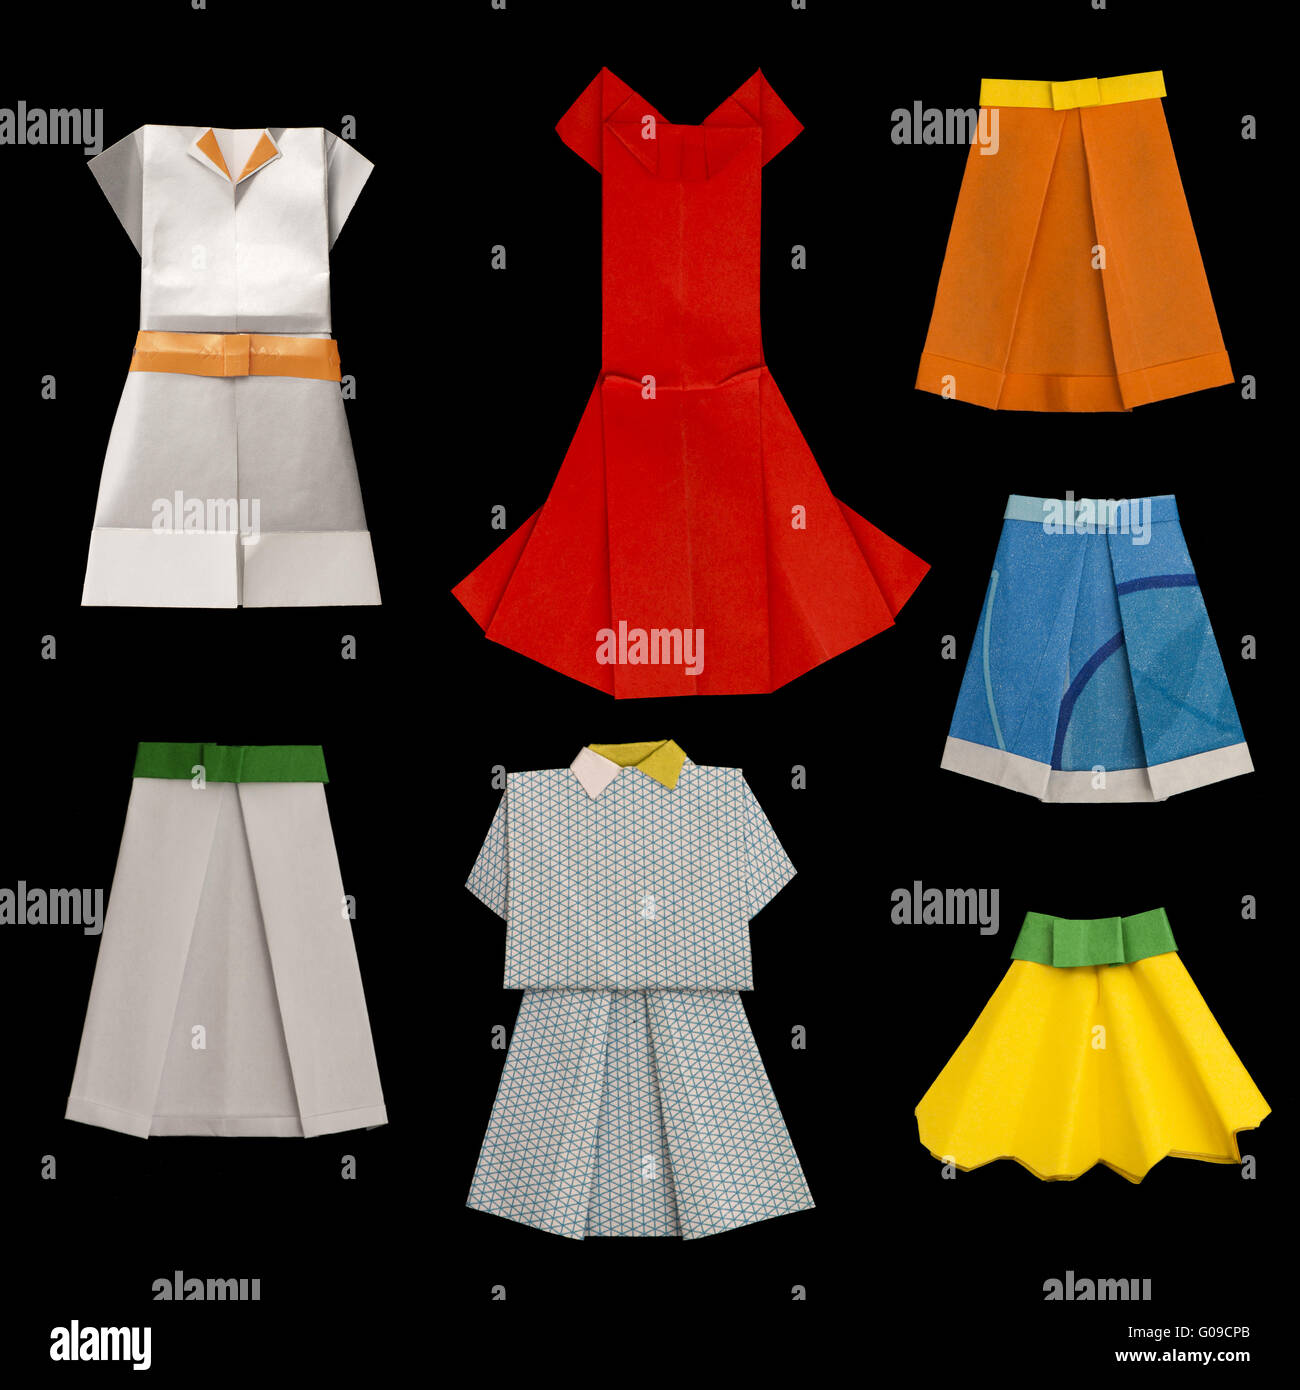 Set of Dresses and Skirts made of paper - Stock Image